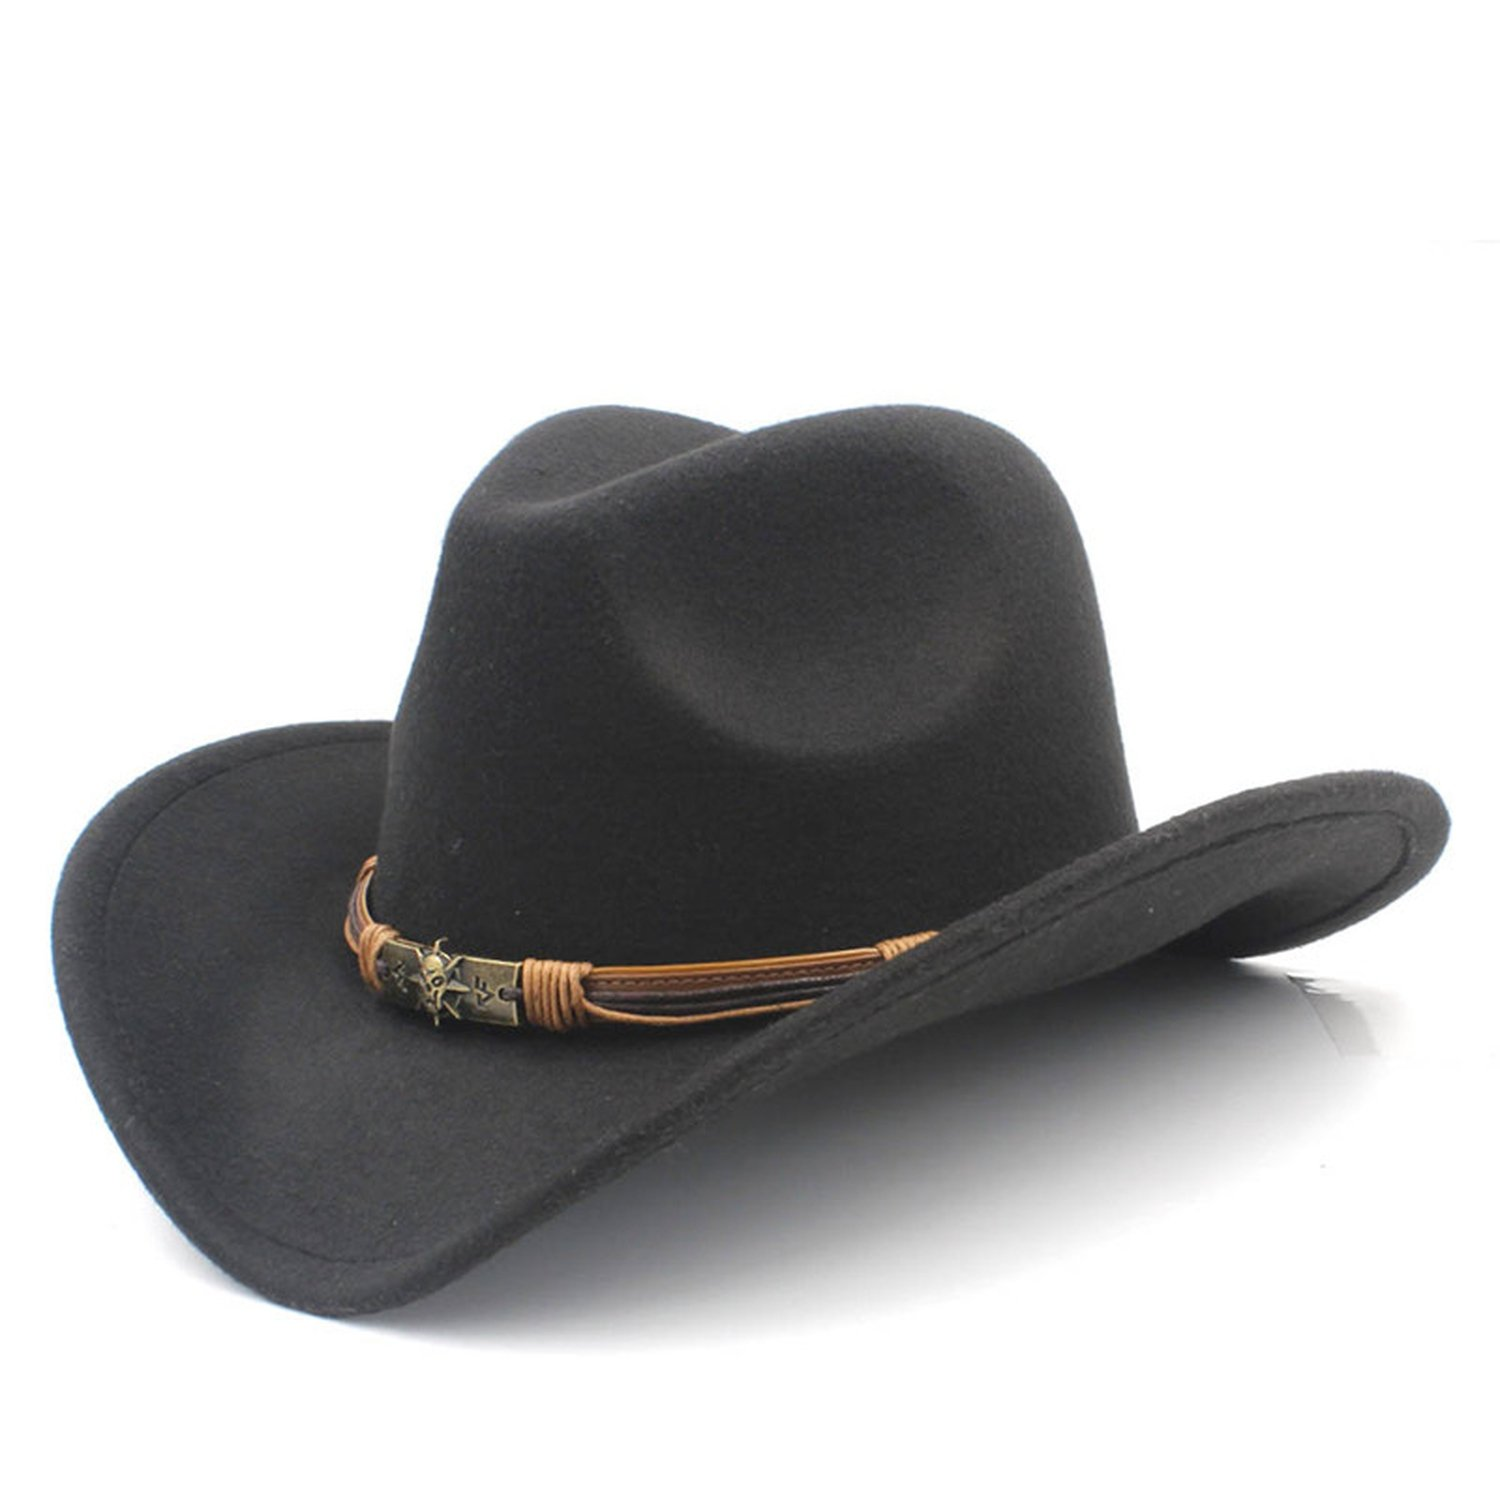 373354bc Amazon.com: Fashion Women Men's Wool Hollow Western Cowboy Hat with Sun God  Belt Cowgirl Jazz Toca Sombrero Godfather Cap Black: Clothing